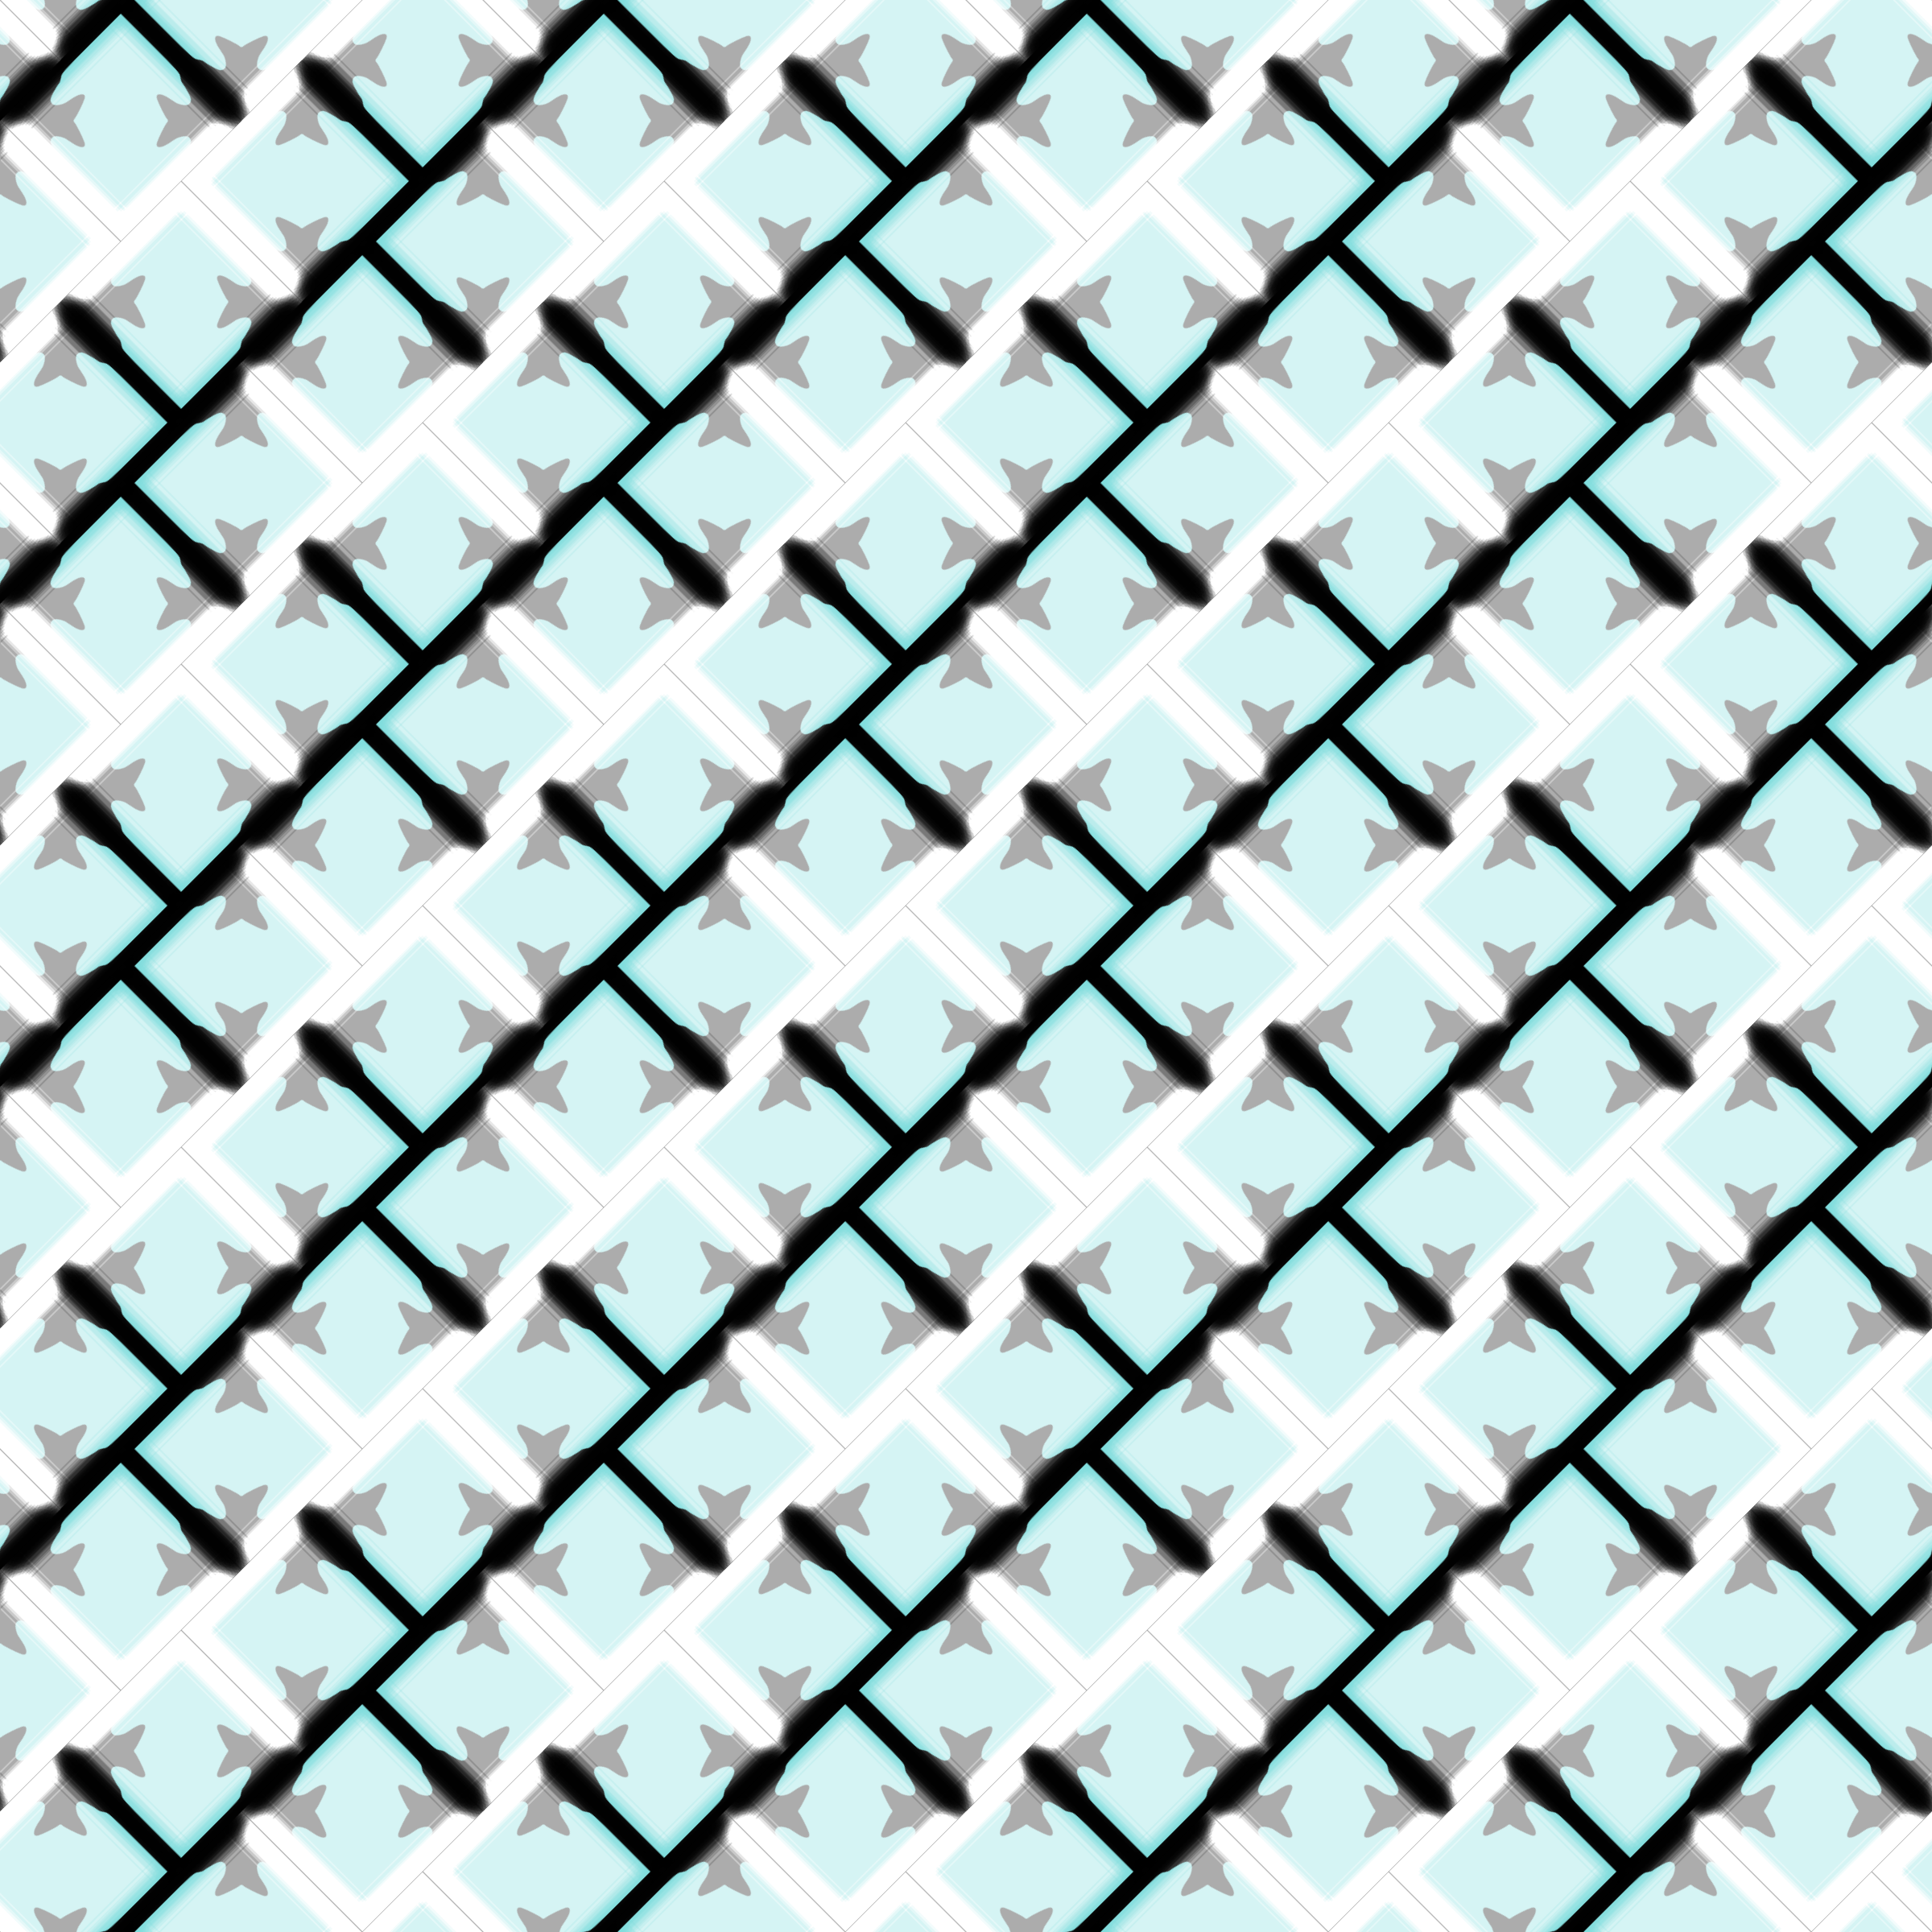 Background pattern 180 by Firkin